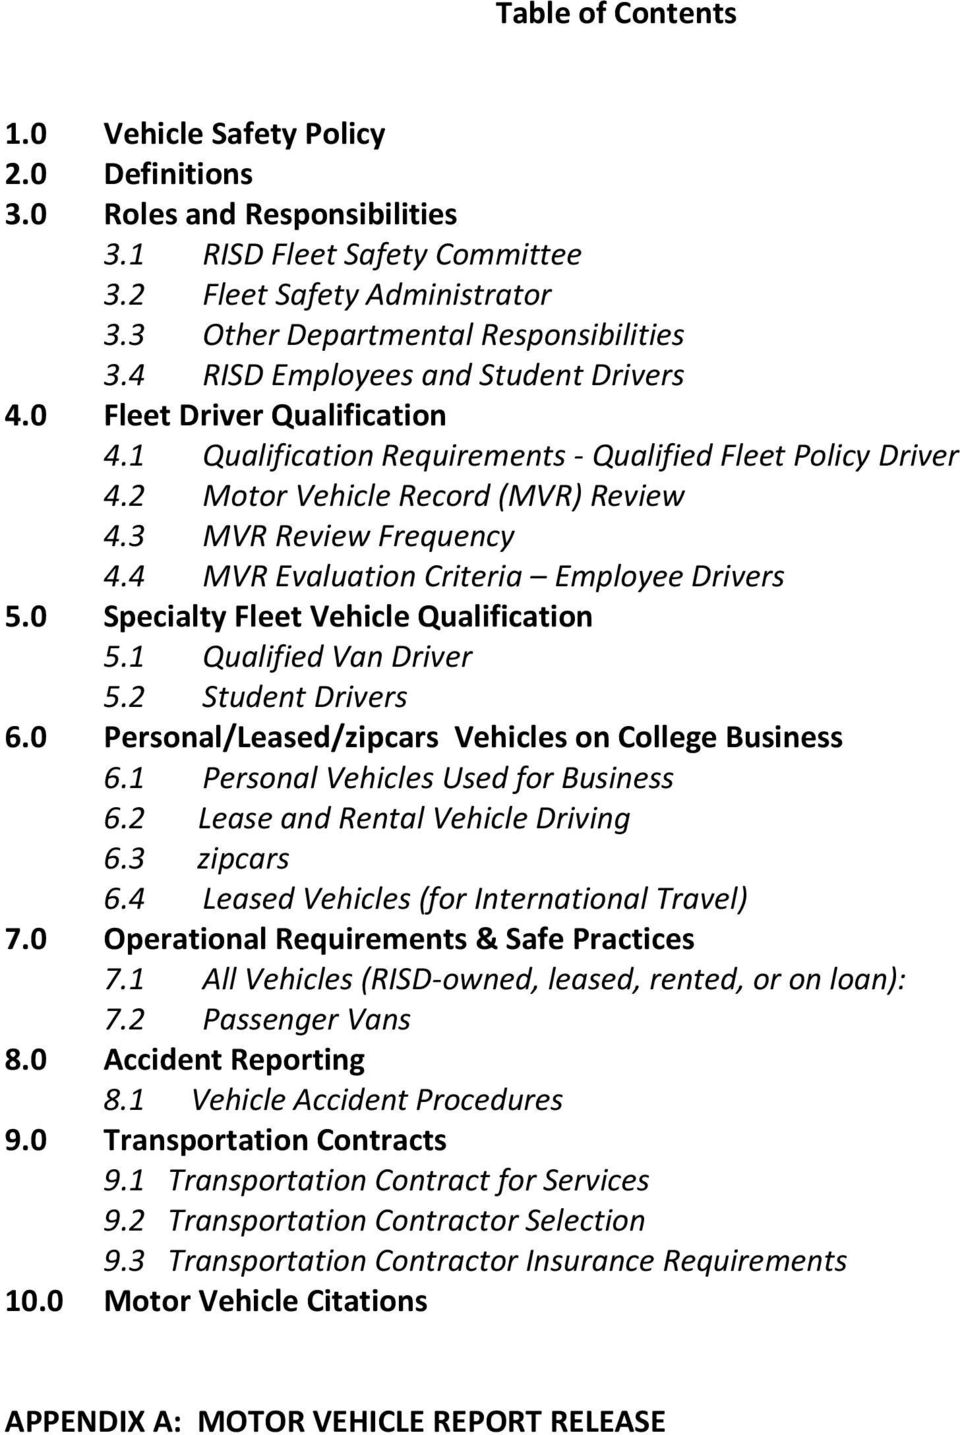 4 MVR Evaluation Criteria Employee Drivers 5.0 Specialty Fleet Vehicle Qualification 5.1 Qualified Van Driver 5.2 Student Drivers 6.0 Personal/Leased/zipcars Vehicles on College Business 6.